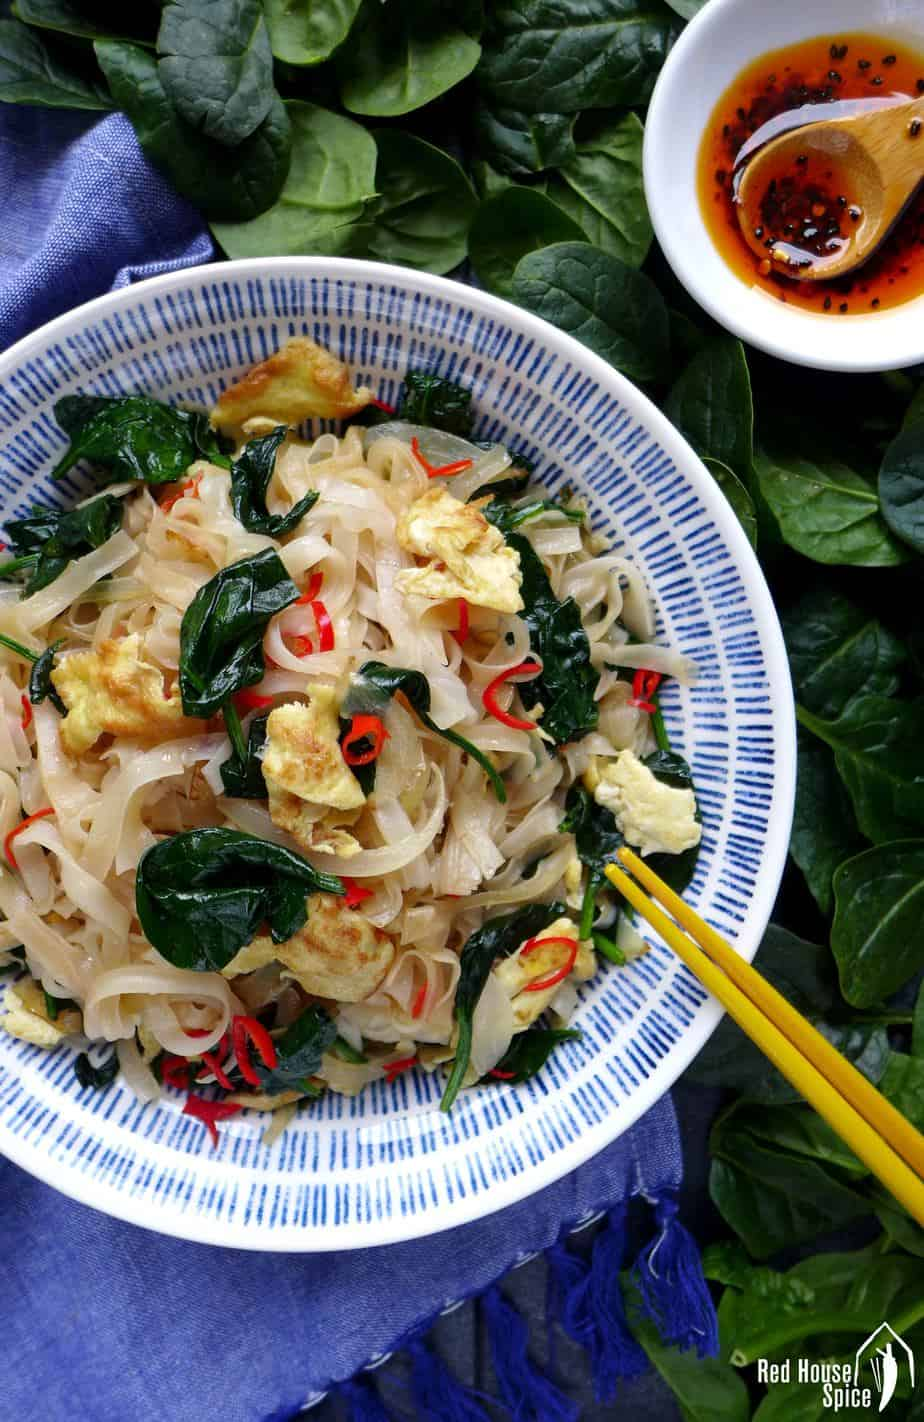 A plate of egg fried rice noodles.